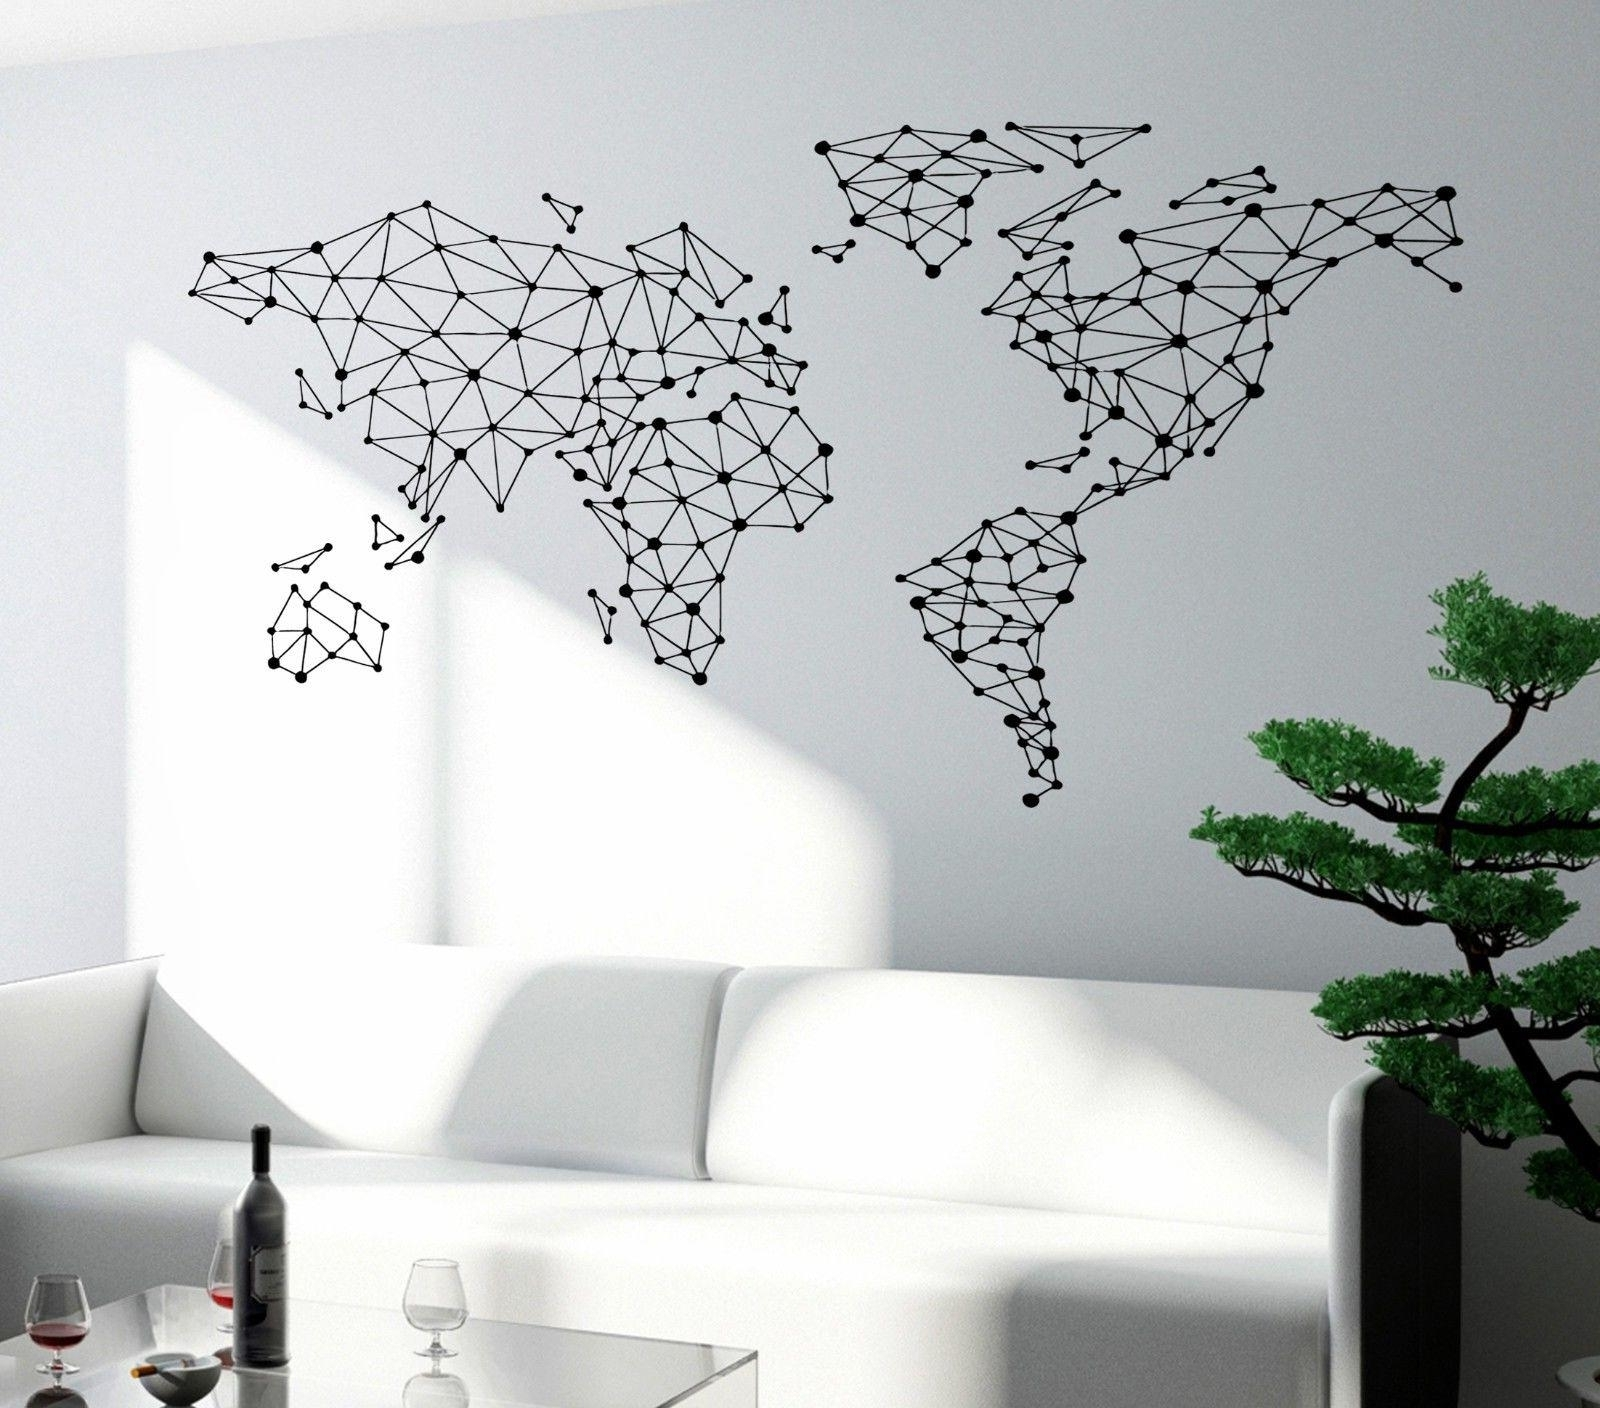 Simple Way To Diy Mural World Map Wall Art – Masata Design Inside Fashionable Maps For Wall Art (View 12 of 15)